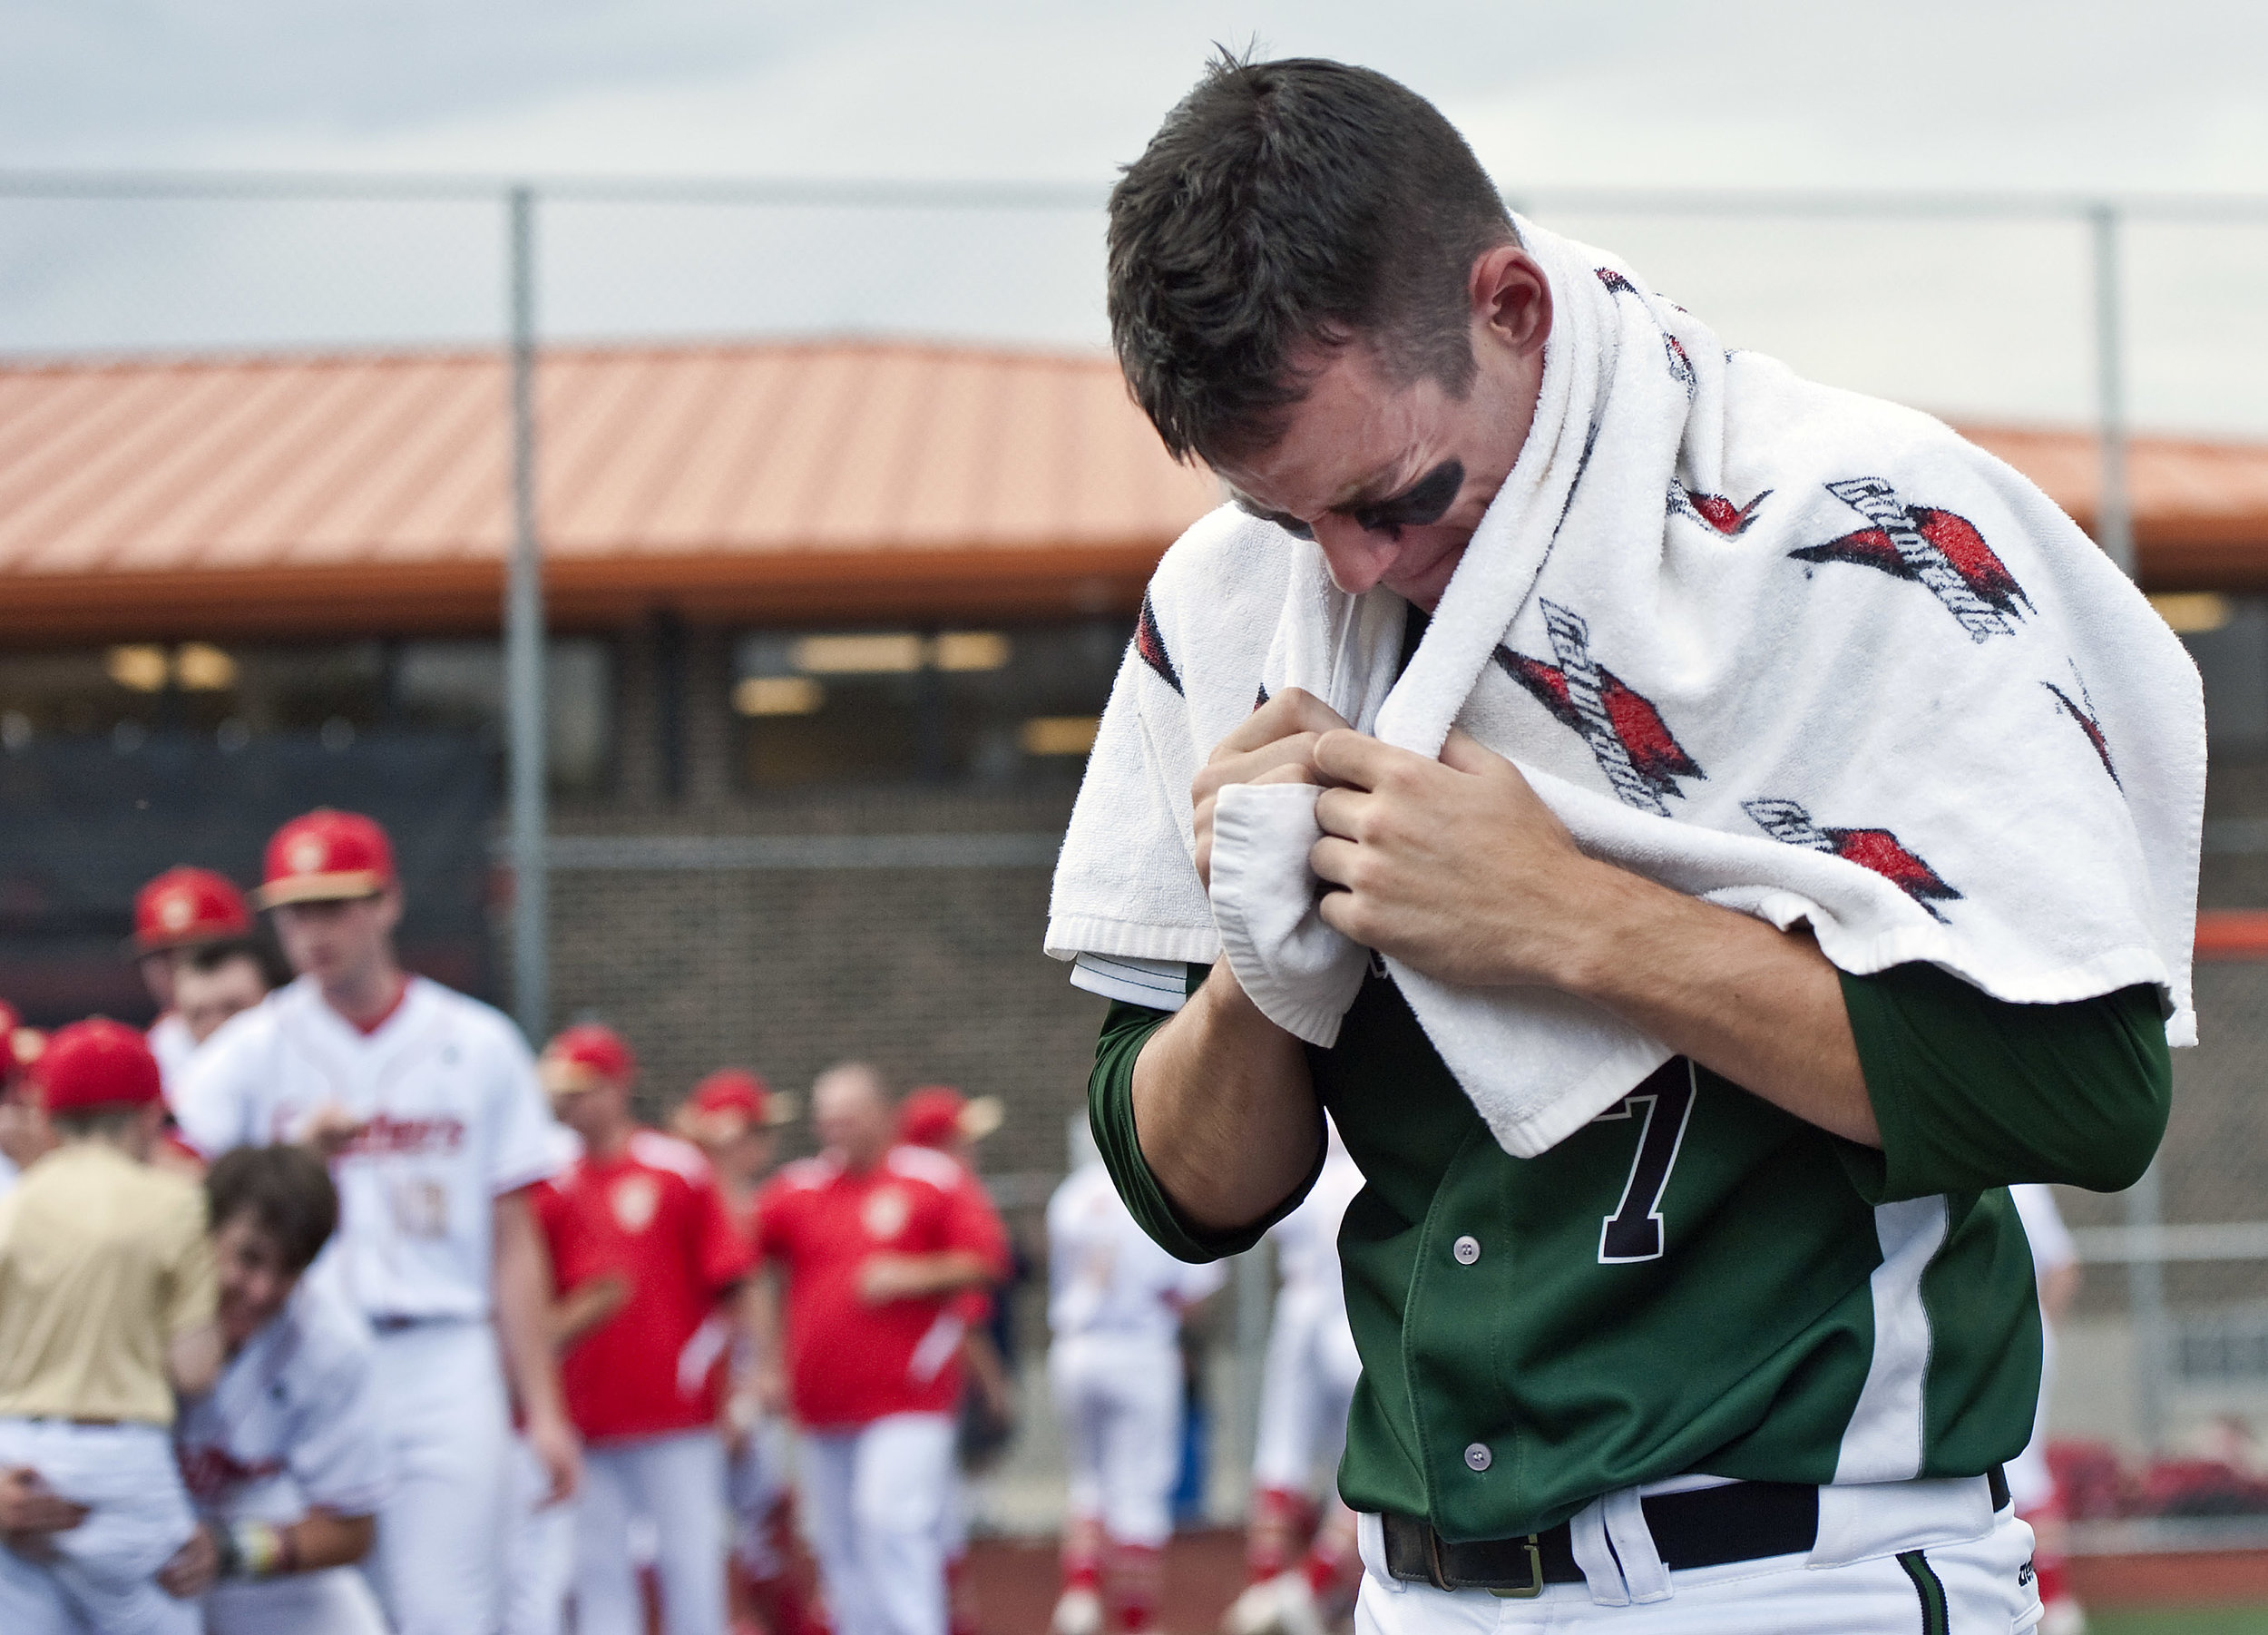 Riverside's Michael Boswell hangs his head after losing to Bishop McCort during a PIAA semifinal baseball game on Monday, June 13, 2016 at Greater Latrobe High School. Riverside lost 1-0.